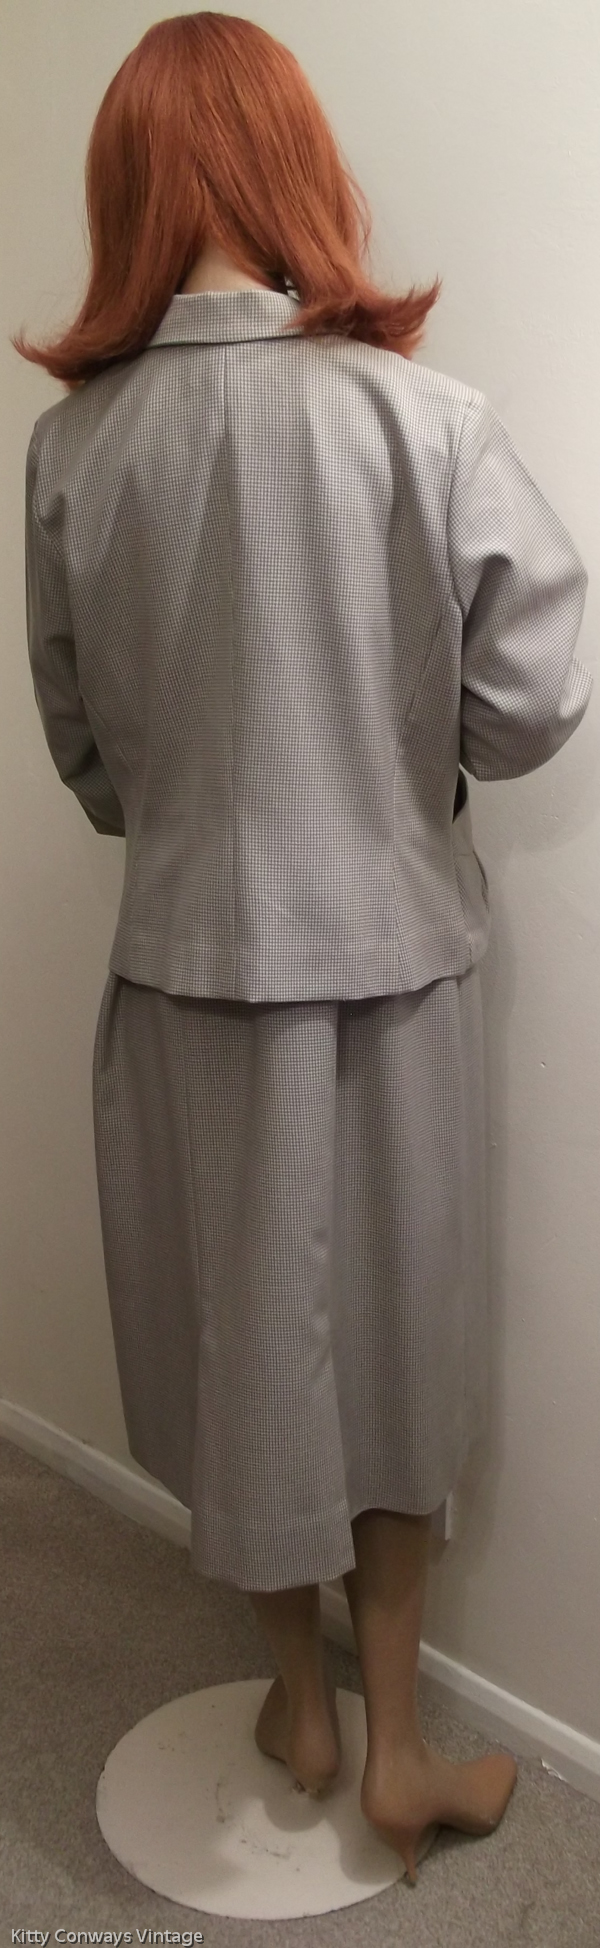 1950s/60s dress suit - back view